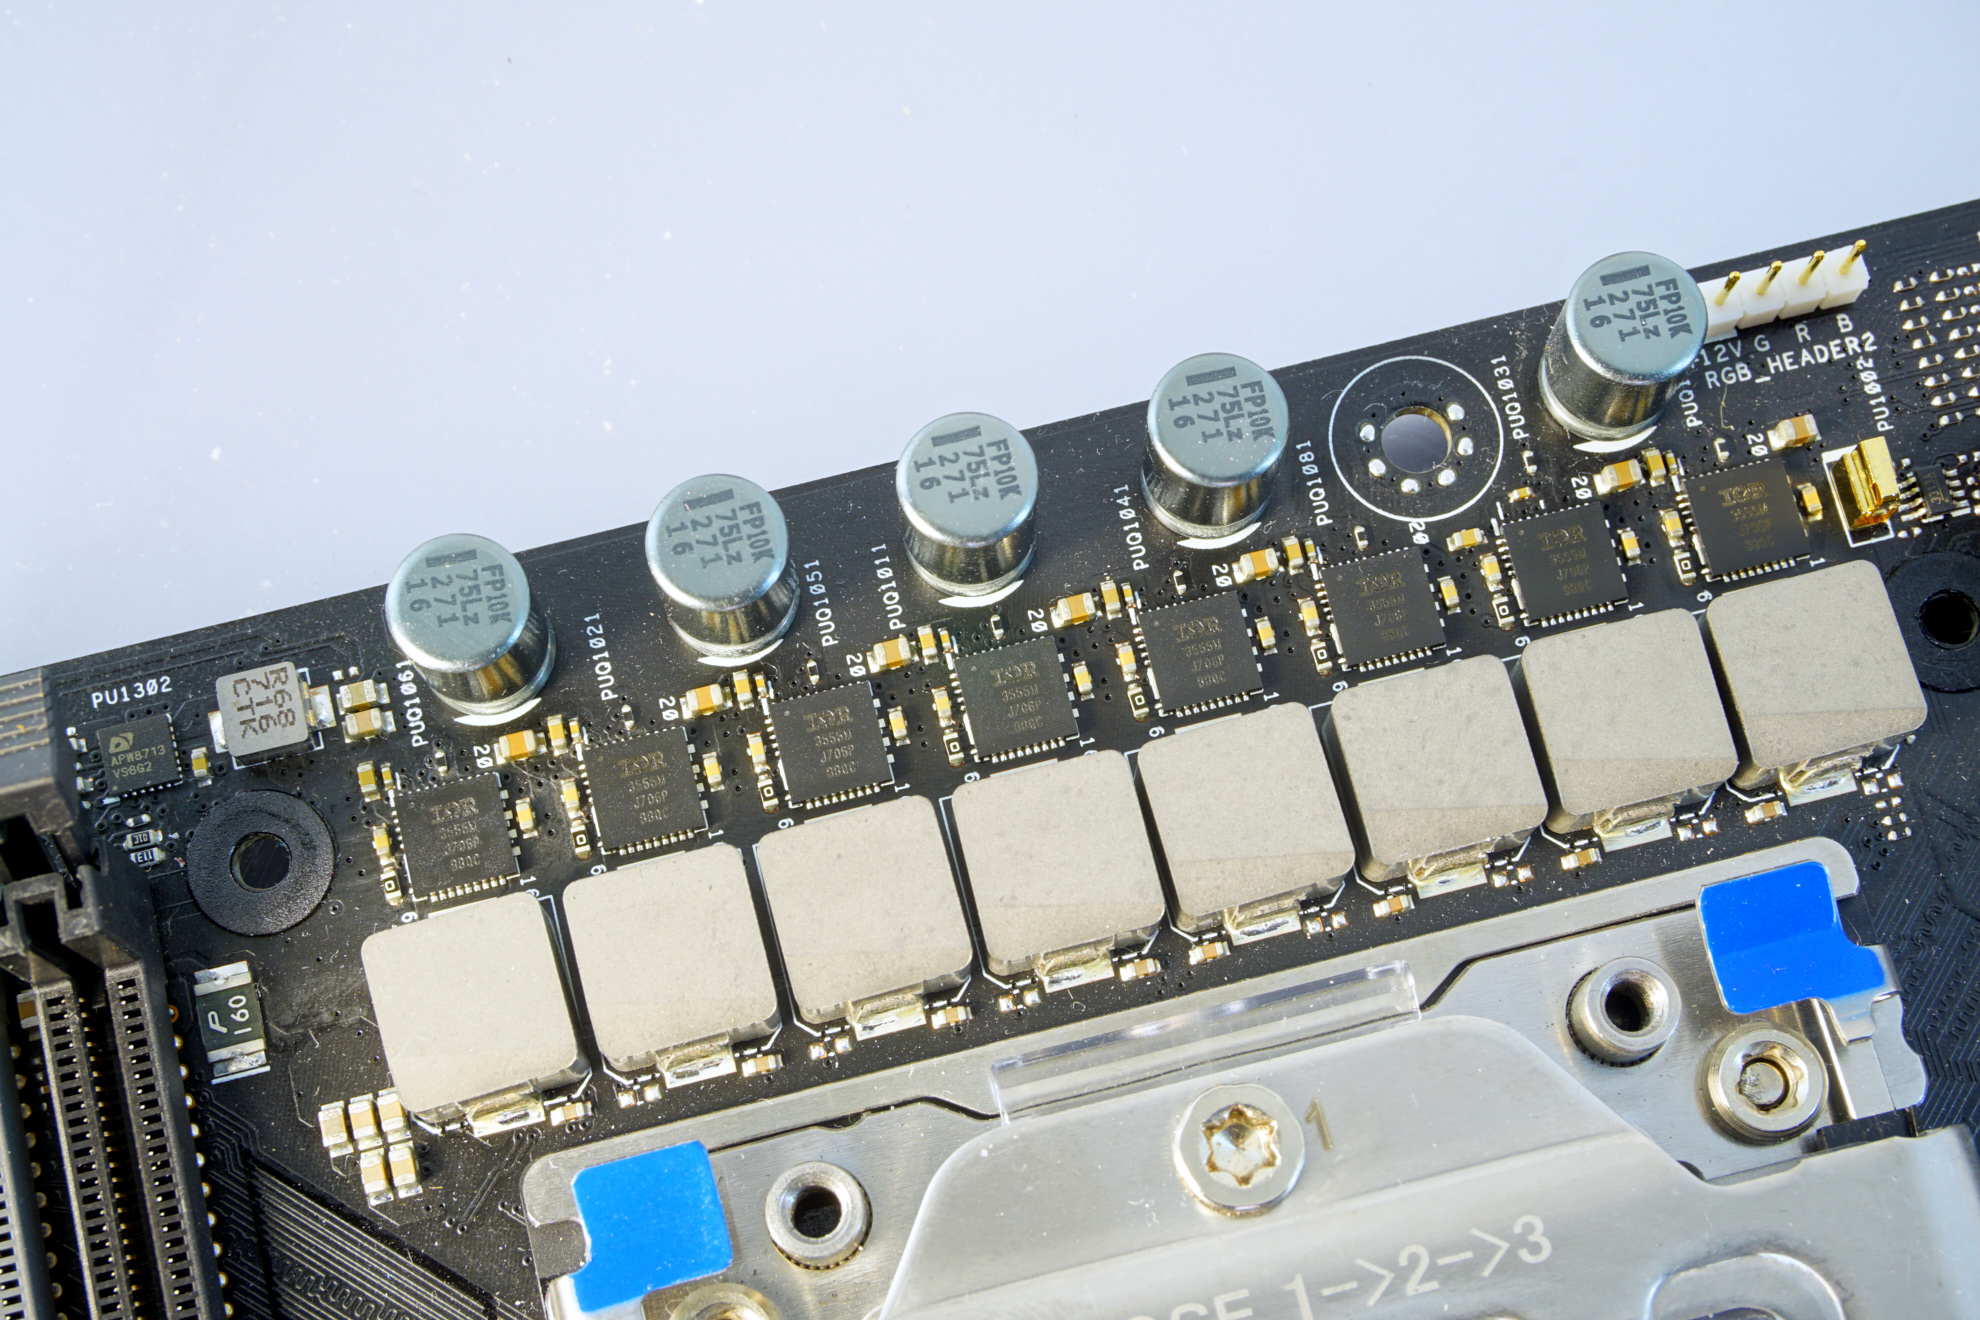 Visual Inspection - The ASUS X399 ROG Zenith Extreme Motherboard